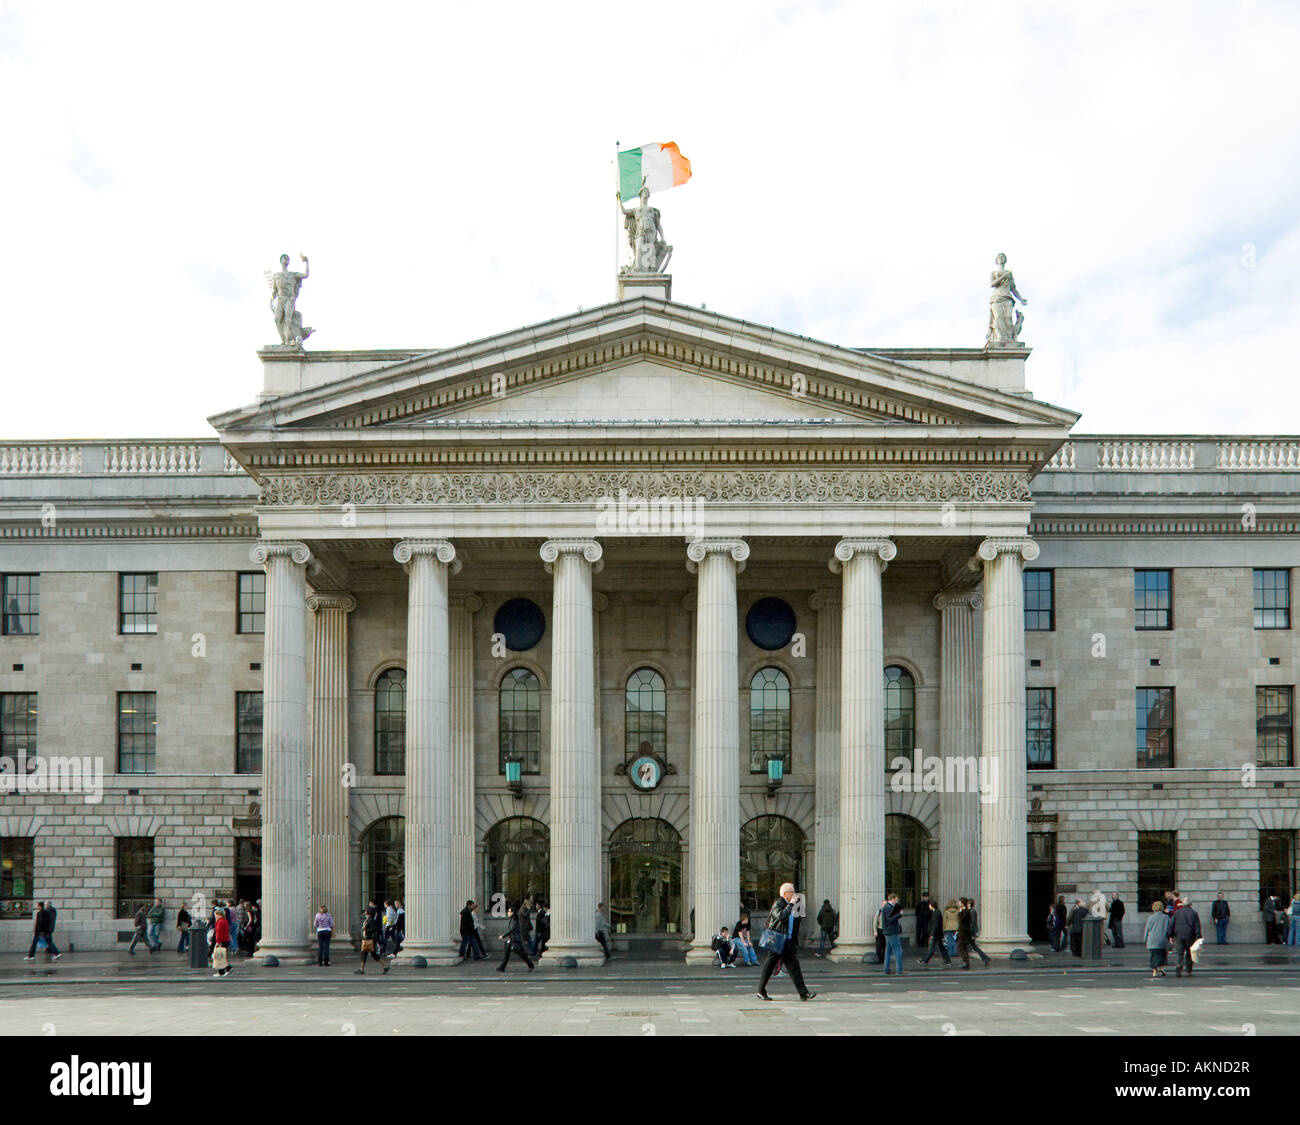 The portico of the gpo general post office on oconnell st dublin ireland